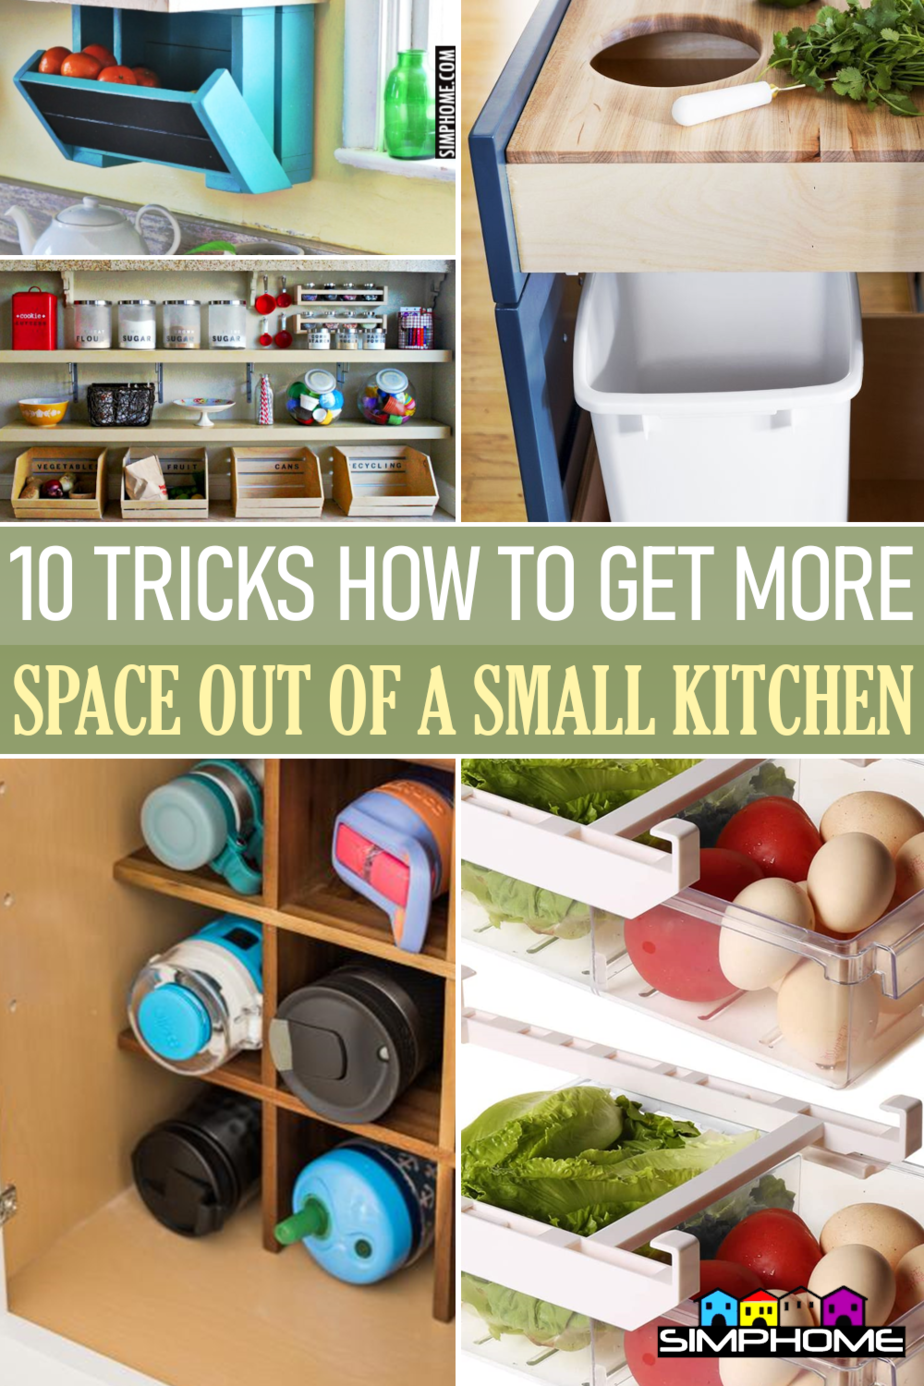 10 tricks to GET NEW storage out of a small kitchen from Simphome.comFeatured